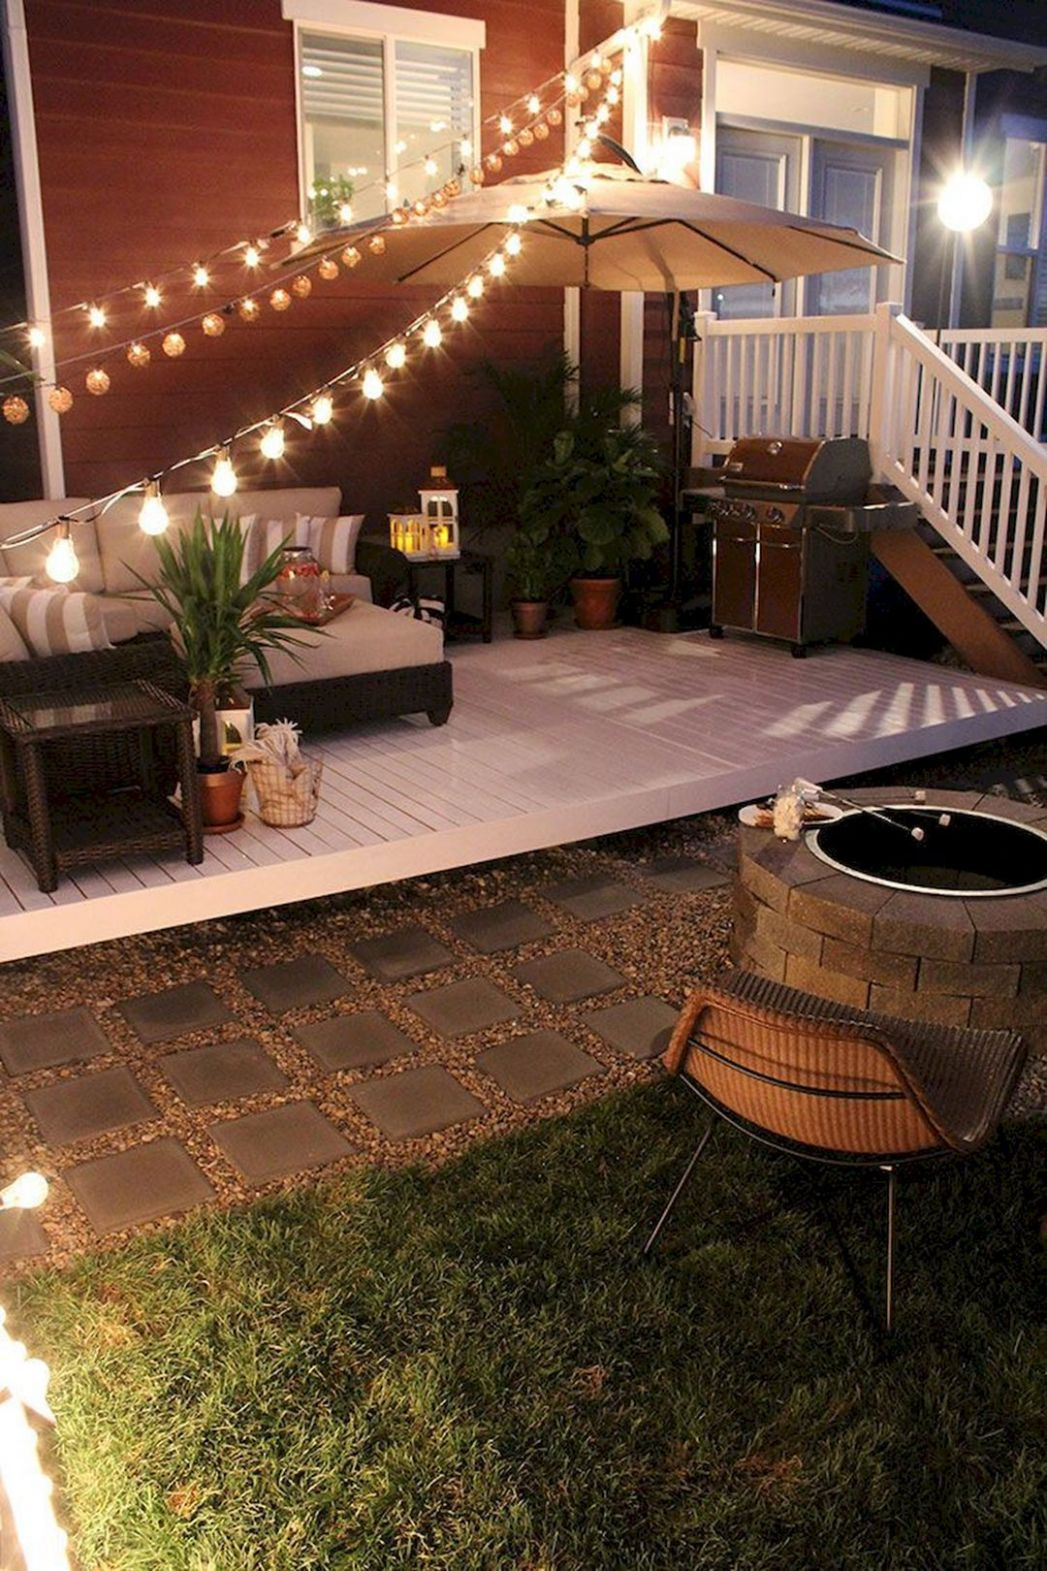 Best 11 Gorgeous Backyard Patio Ideas On a Budget | Landscaping ..